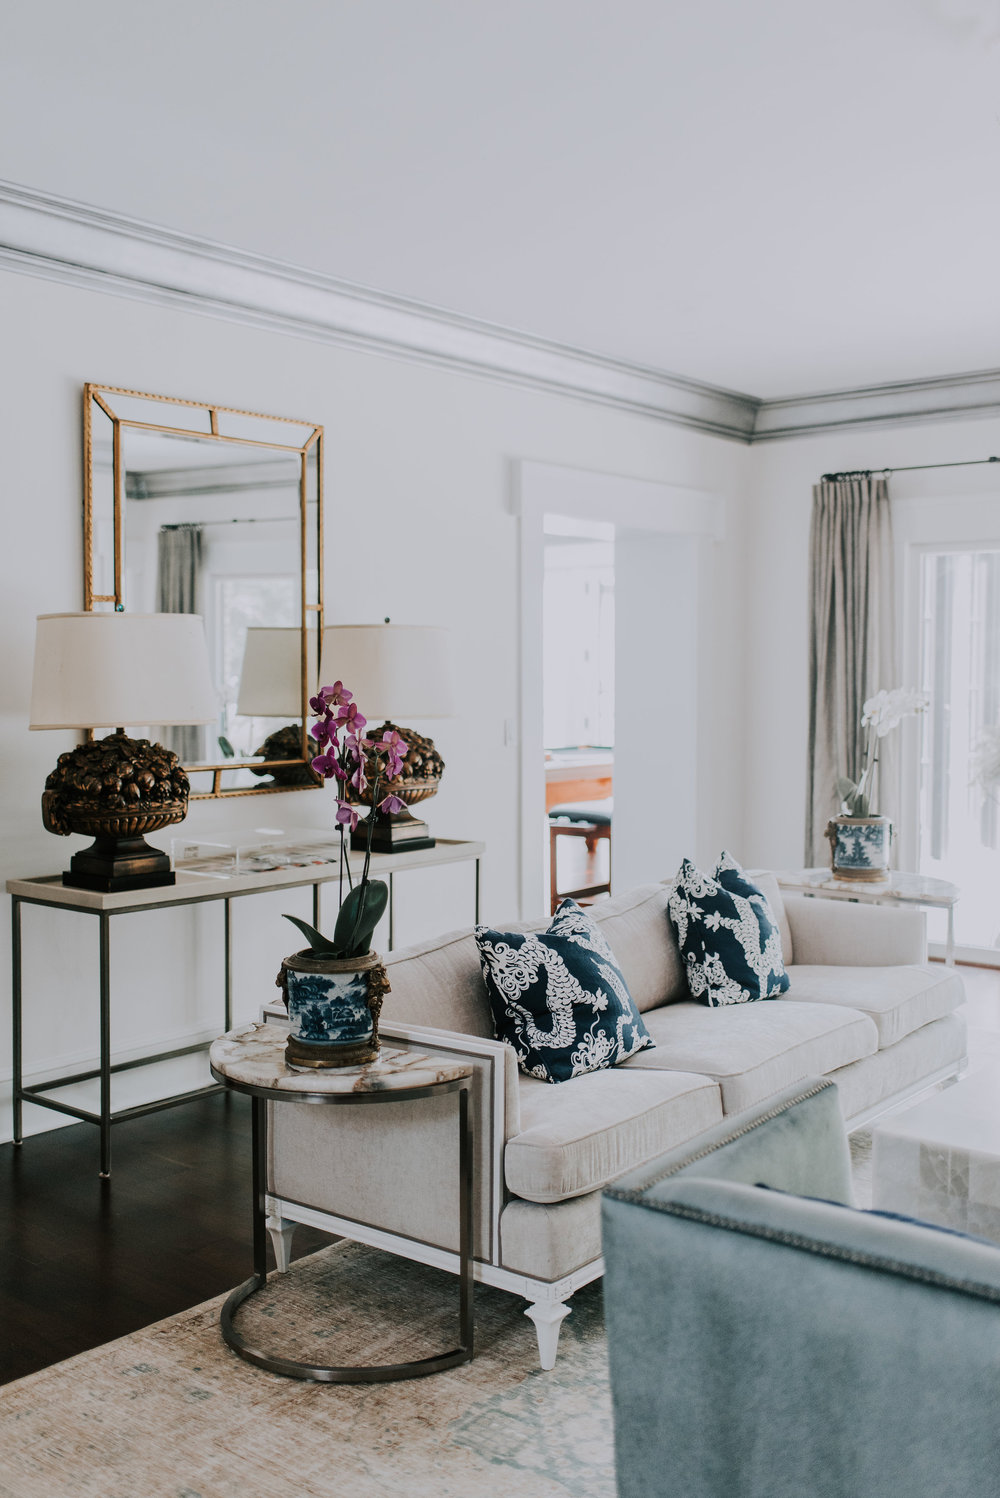 stonehill residence - classically composed An Ohio colonial becomes a French Provincial estate. The stonehill residence began 20 years ago when a friendship between the owner and designer, Dawn first bloomed.